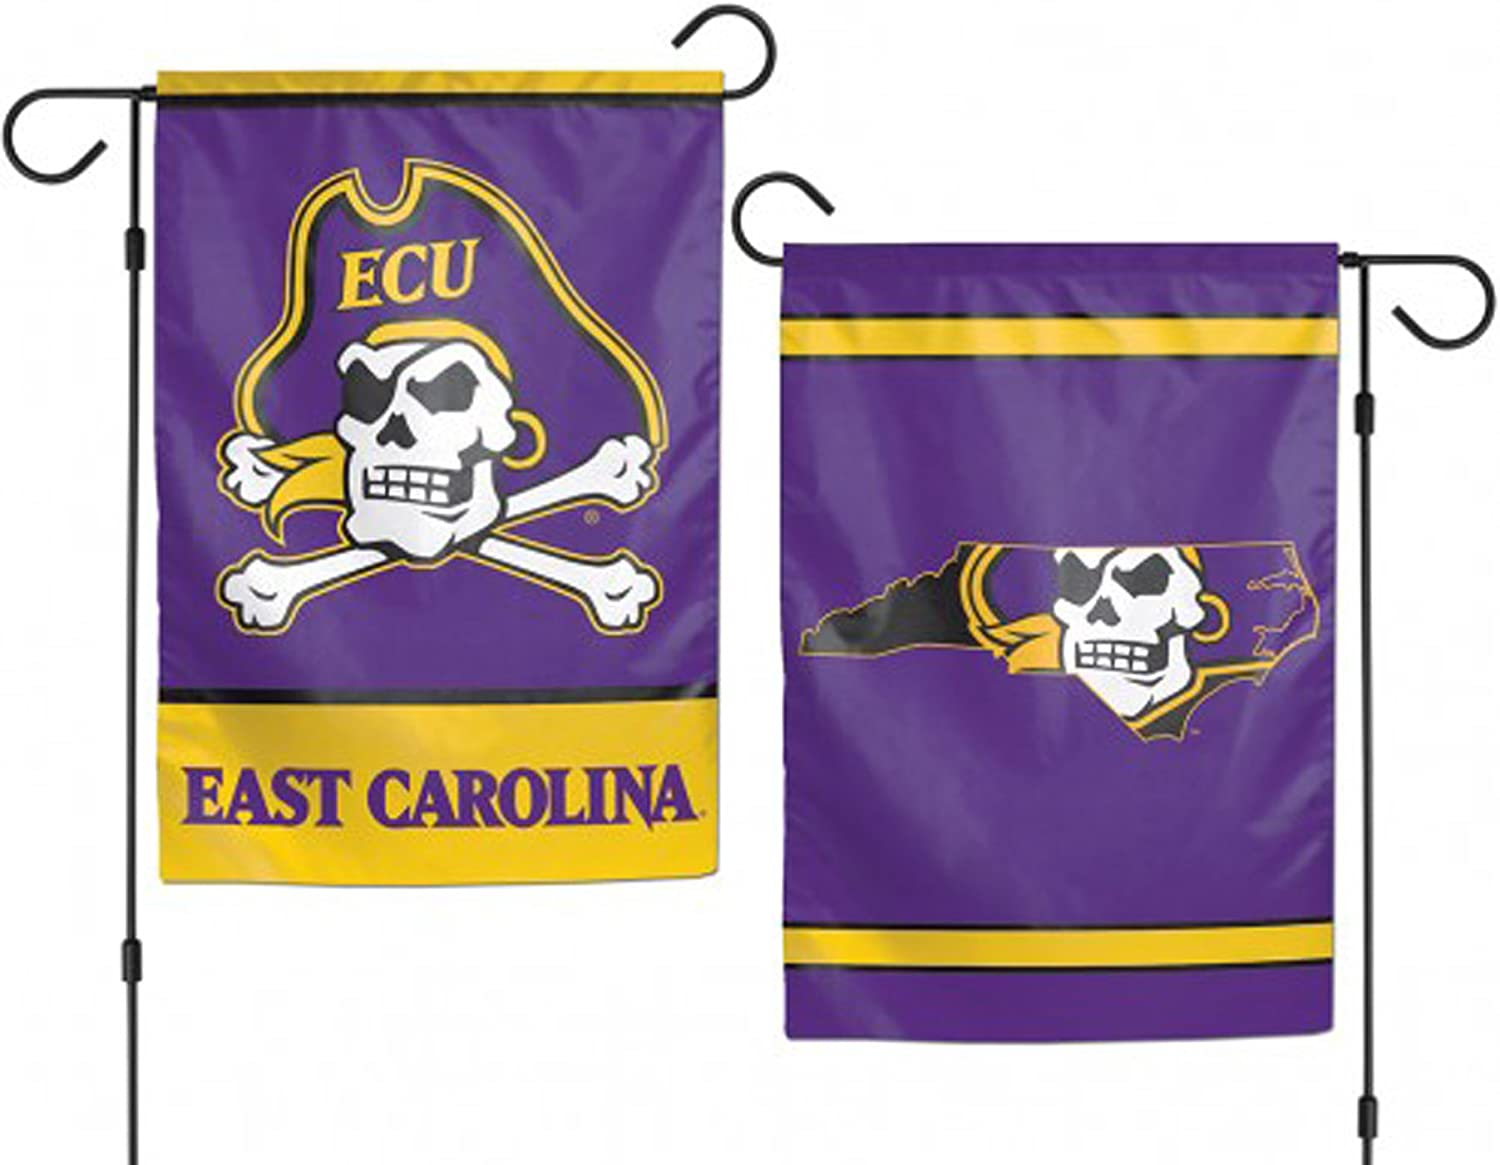 NCAA East Carolina Pirates Flag12x18 Garden Style 2 Sided Flag, Team Colors, One Size